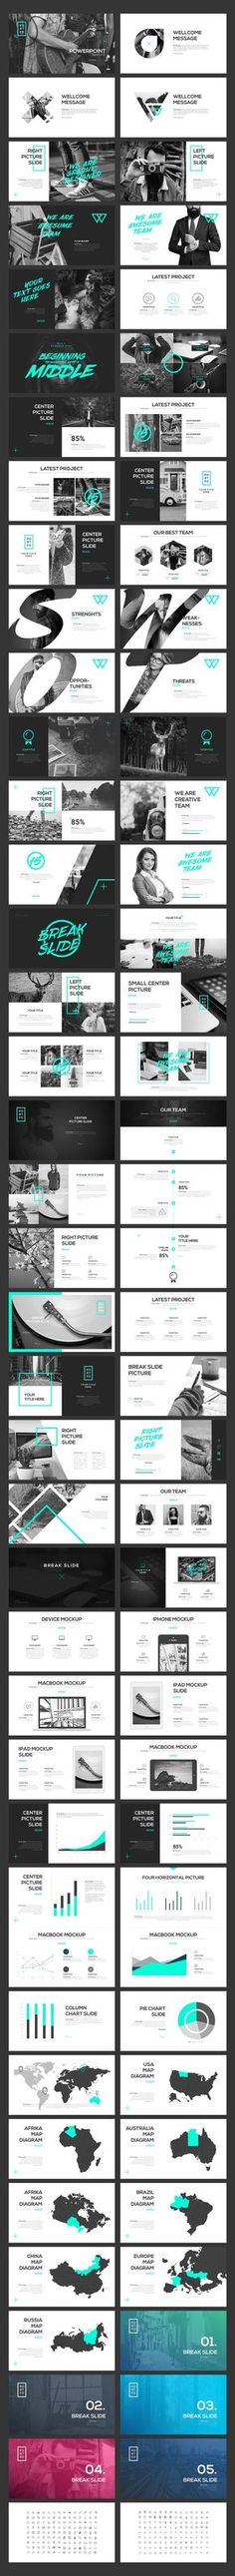 PORTFO Keynote Template by Angkalimabelas on @Creative Market